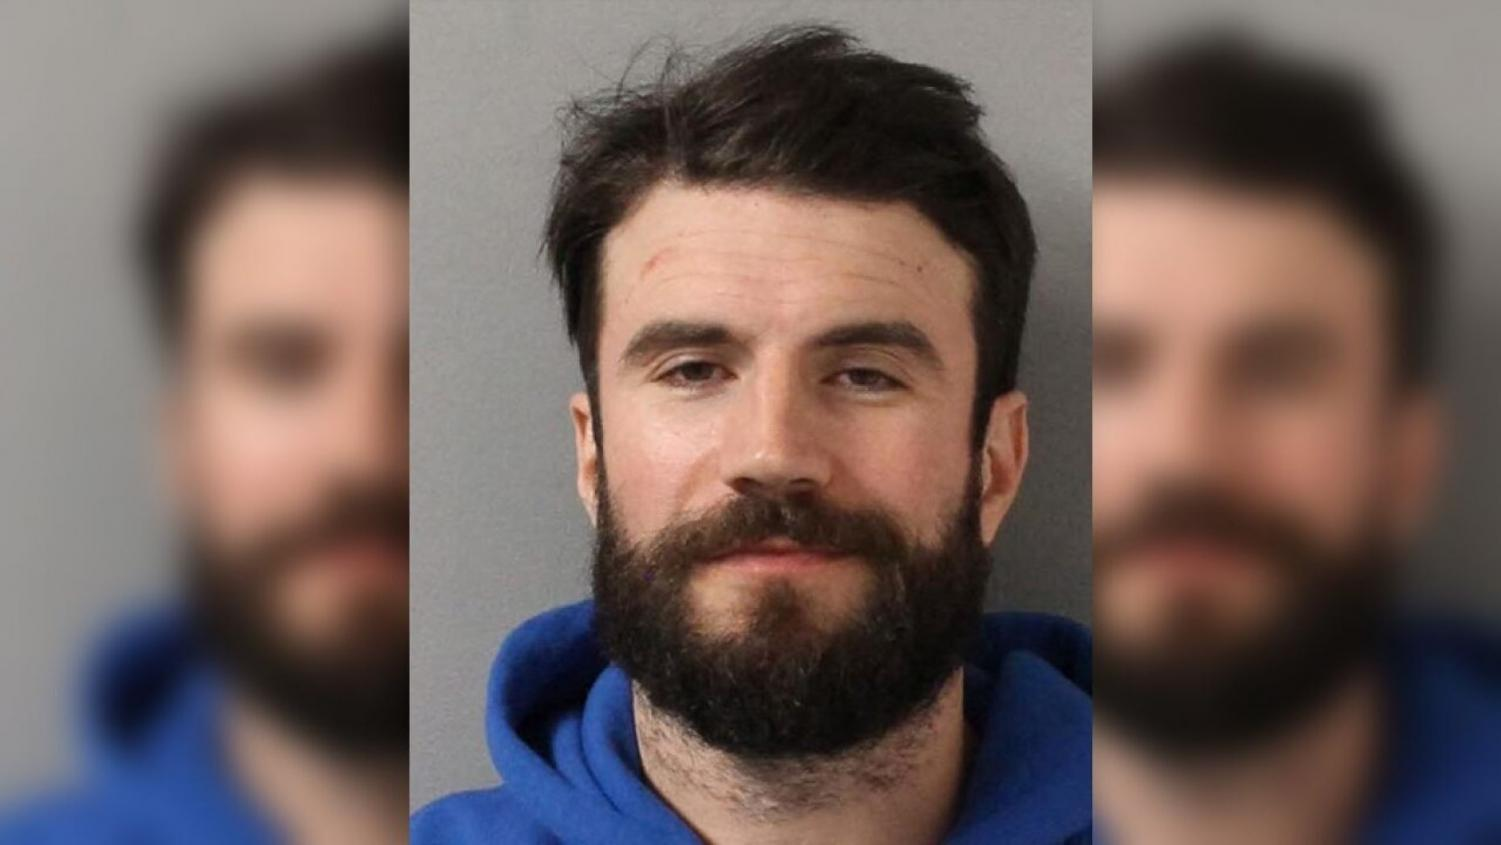 Sam Hunt's DUI happened a little over a month after releasing the hit song, 'Kinfolks.'